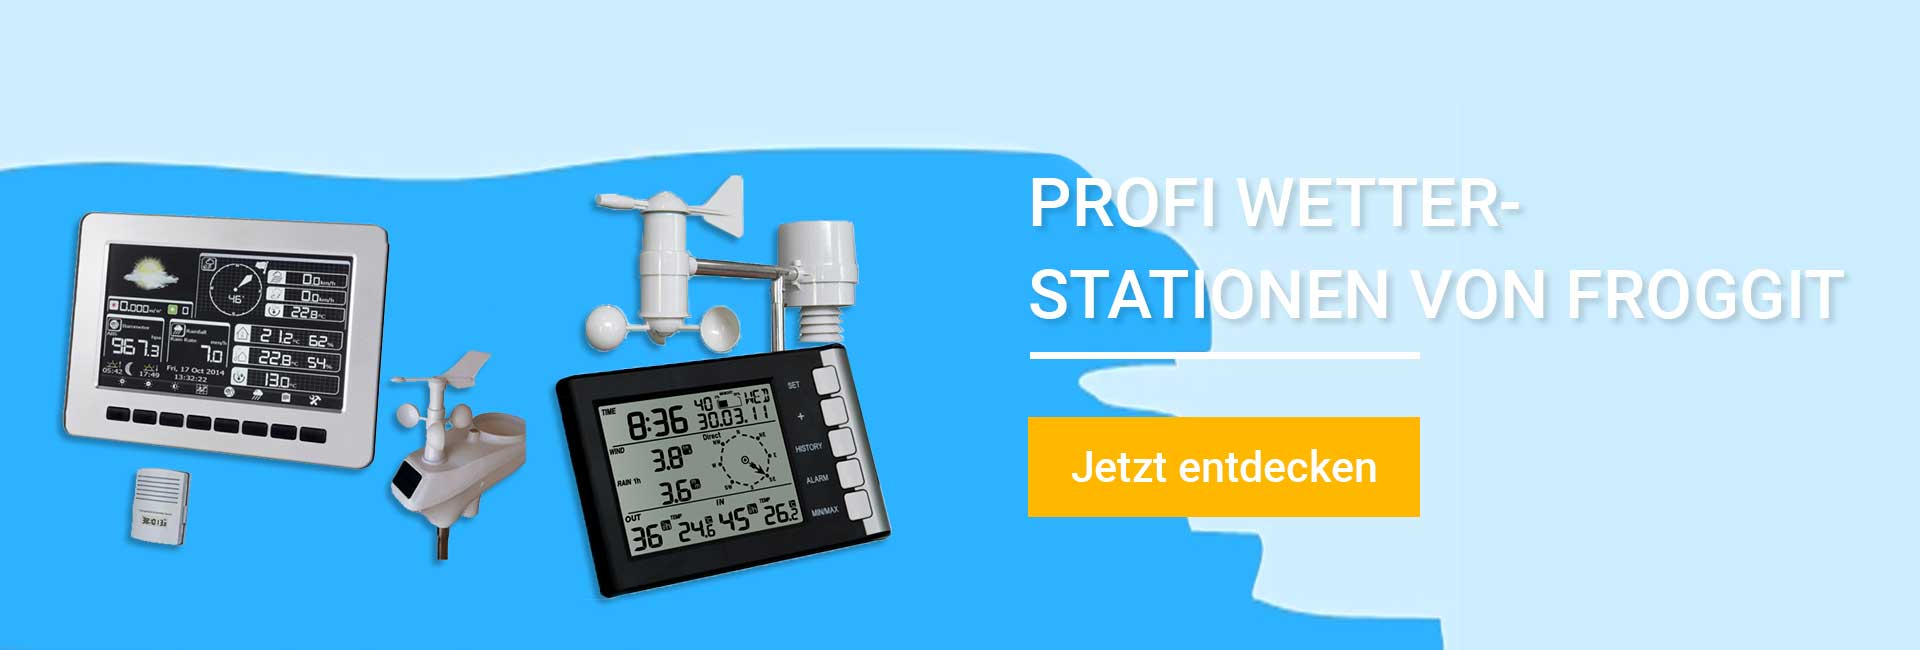 Sliderbild Wetterstation